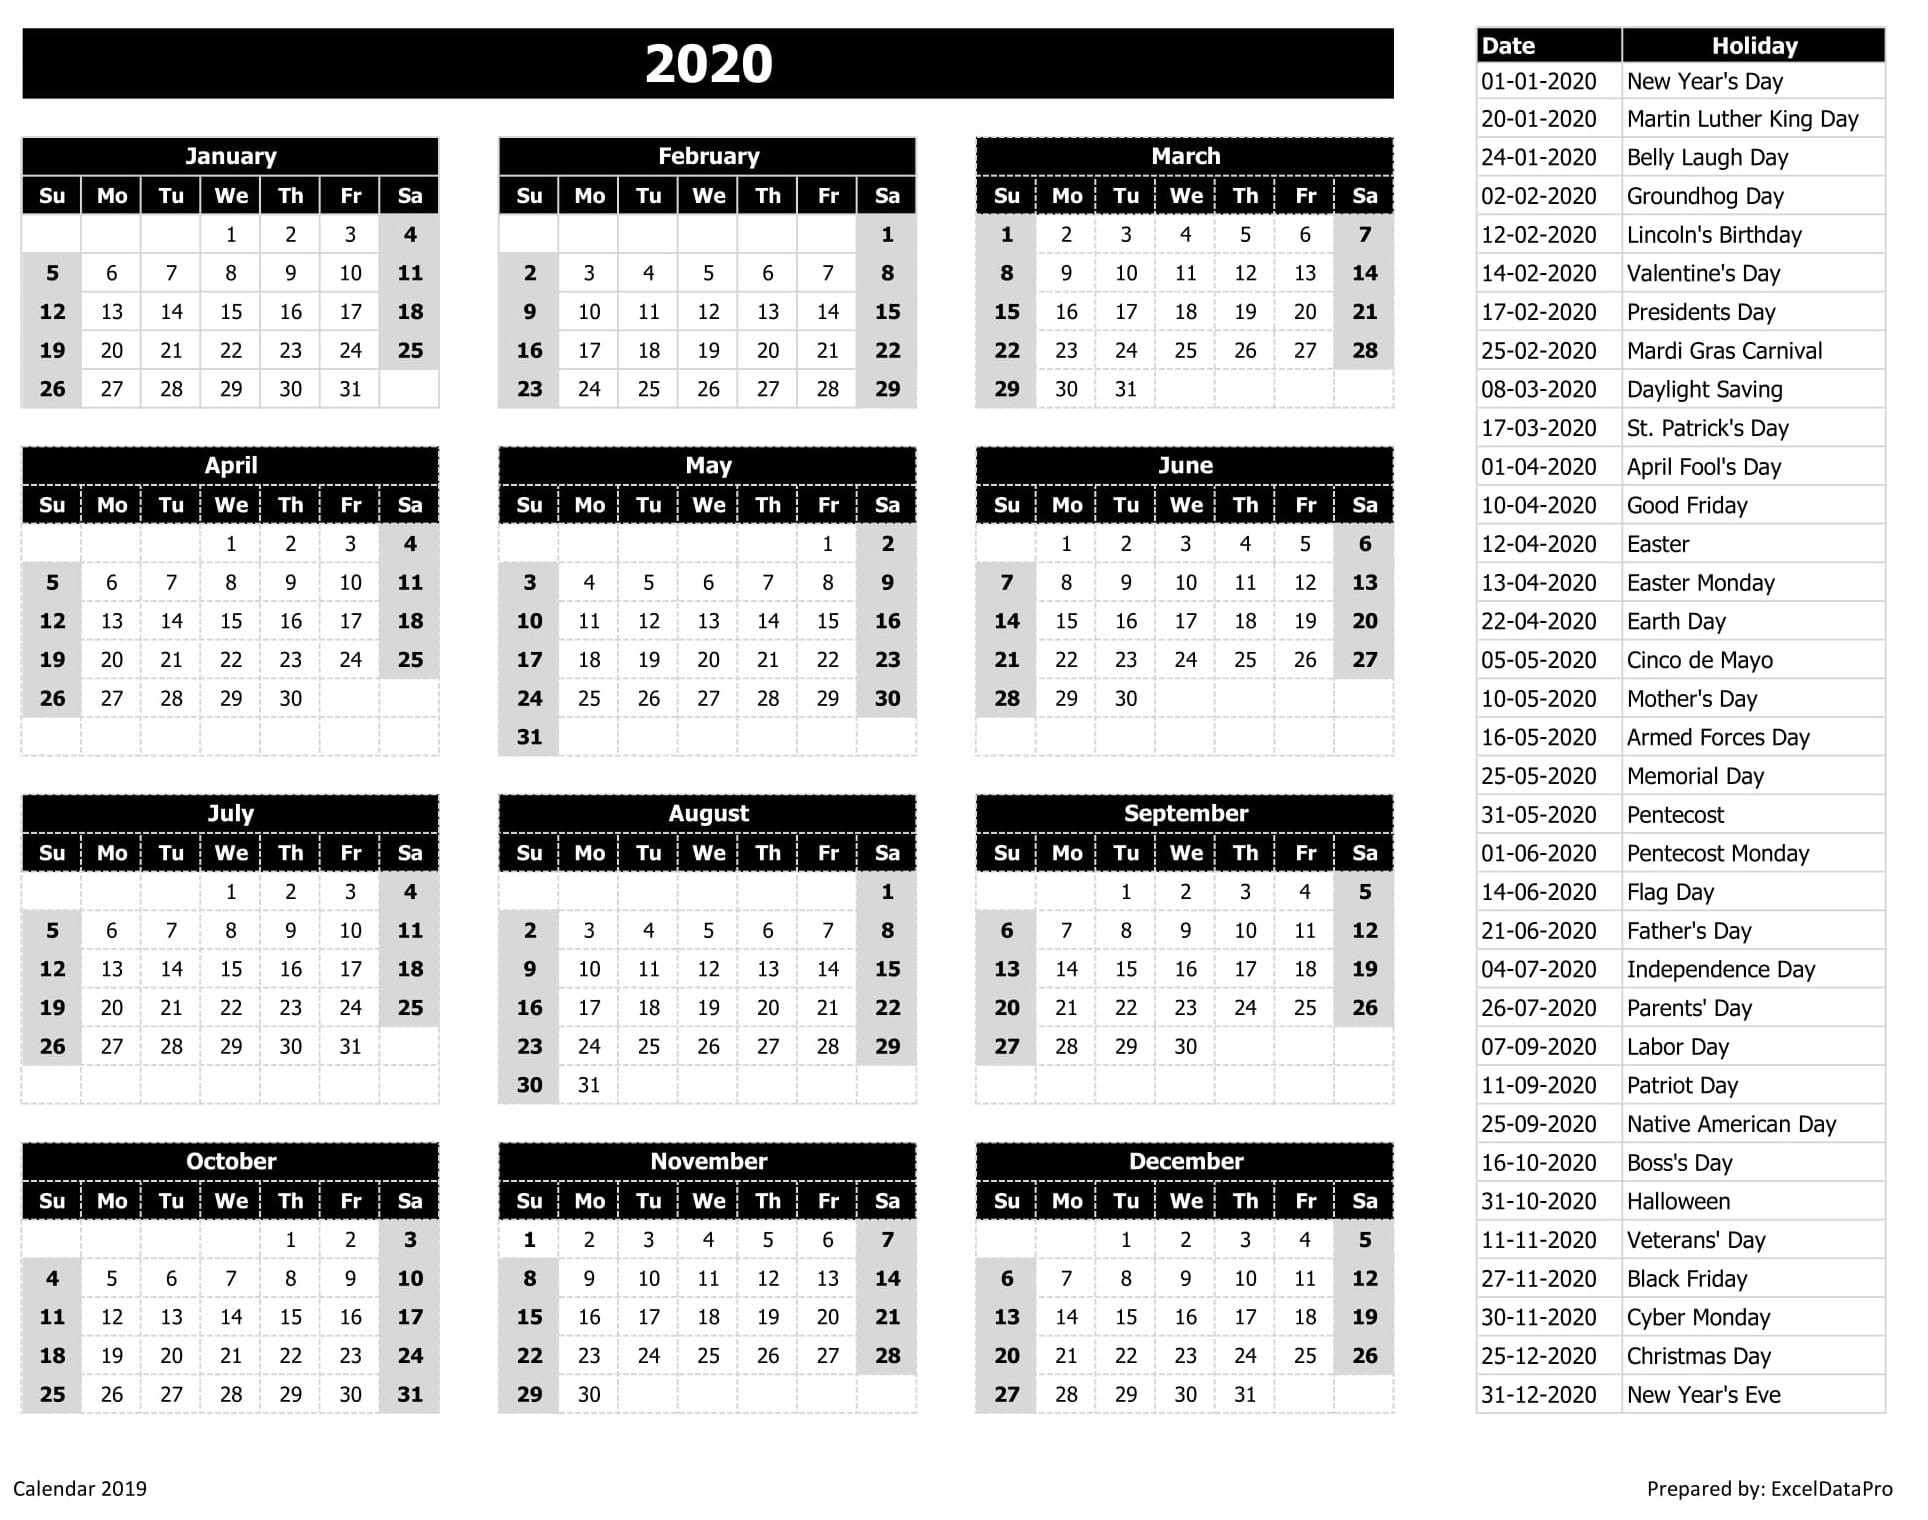 2020 Calendar Excel Templates, Printable Pdfs & Images-2020 Calendar With Holidays In India Pdf